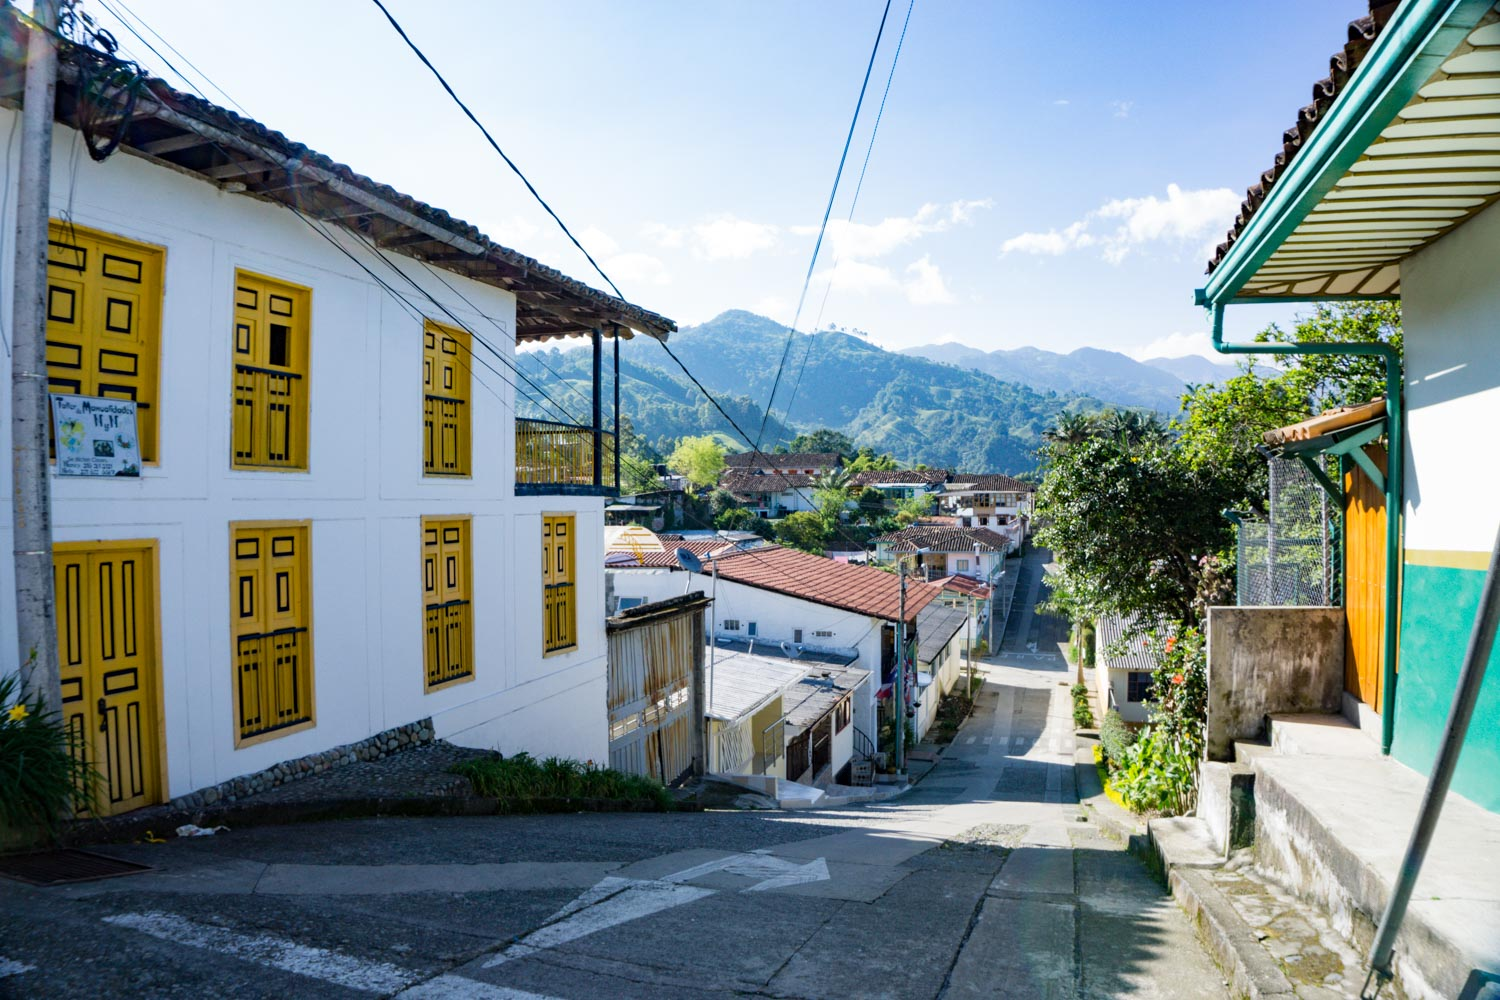 Streets of Salento, Colombia